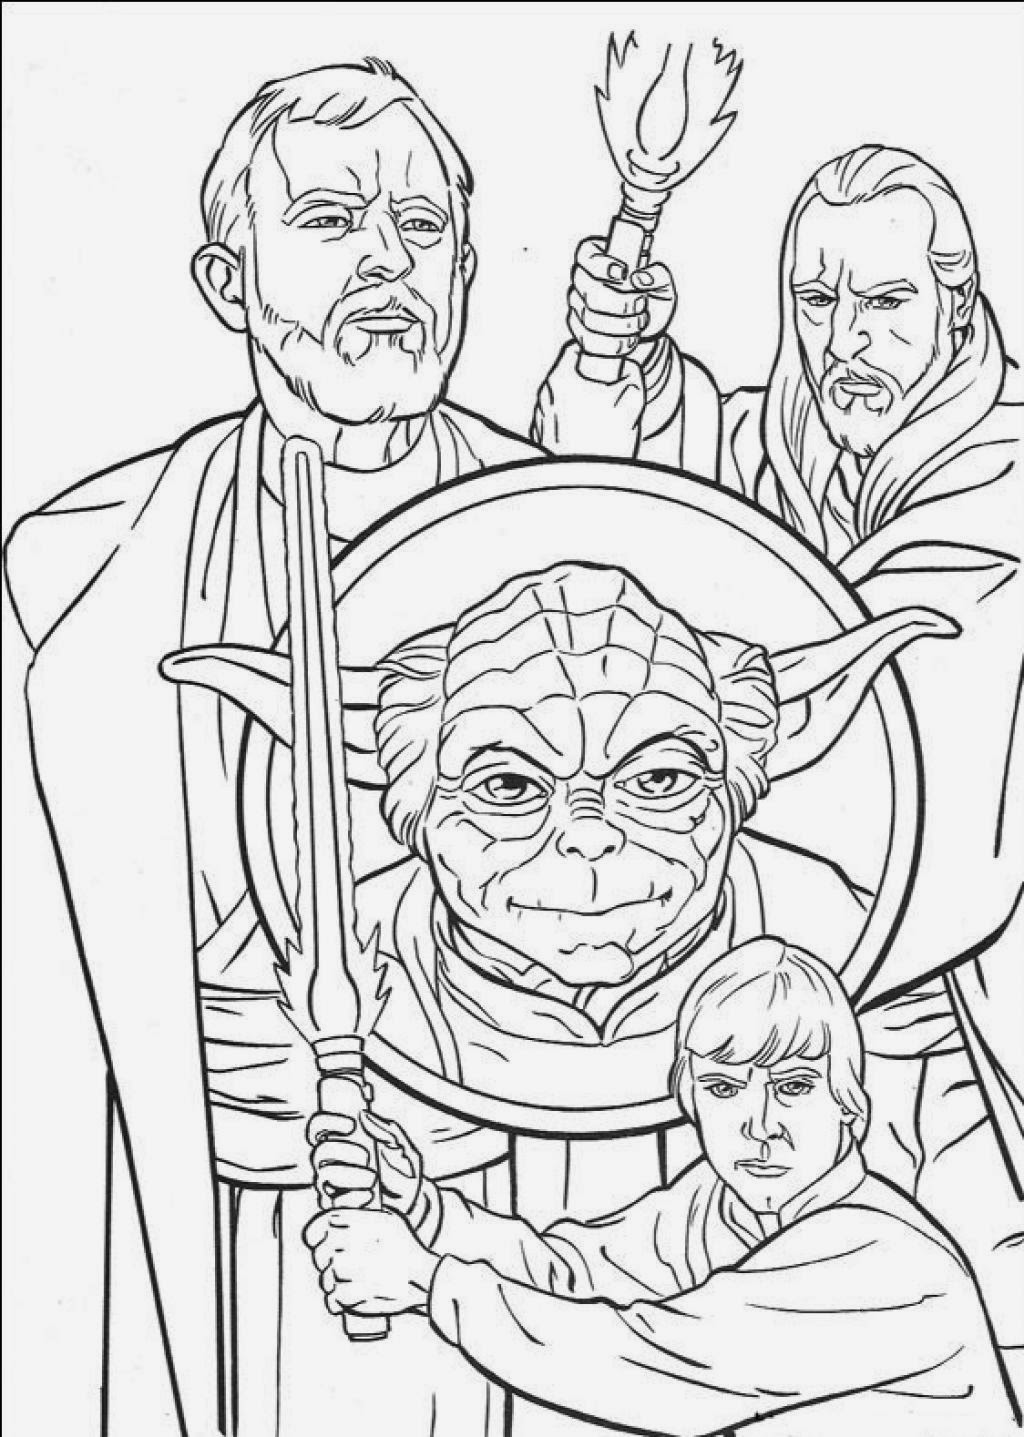 star wars pictures to print and color star wars printable coloring pages hubpages color and pictures star print to wars